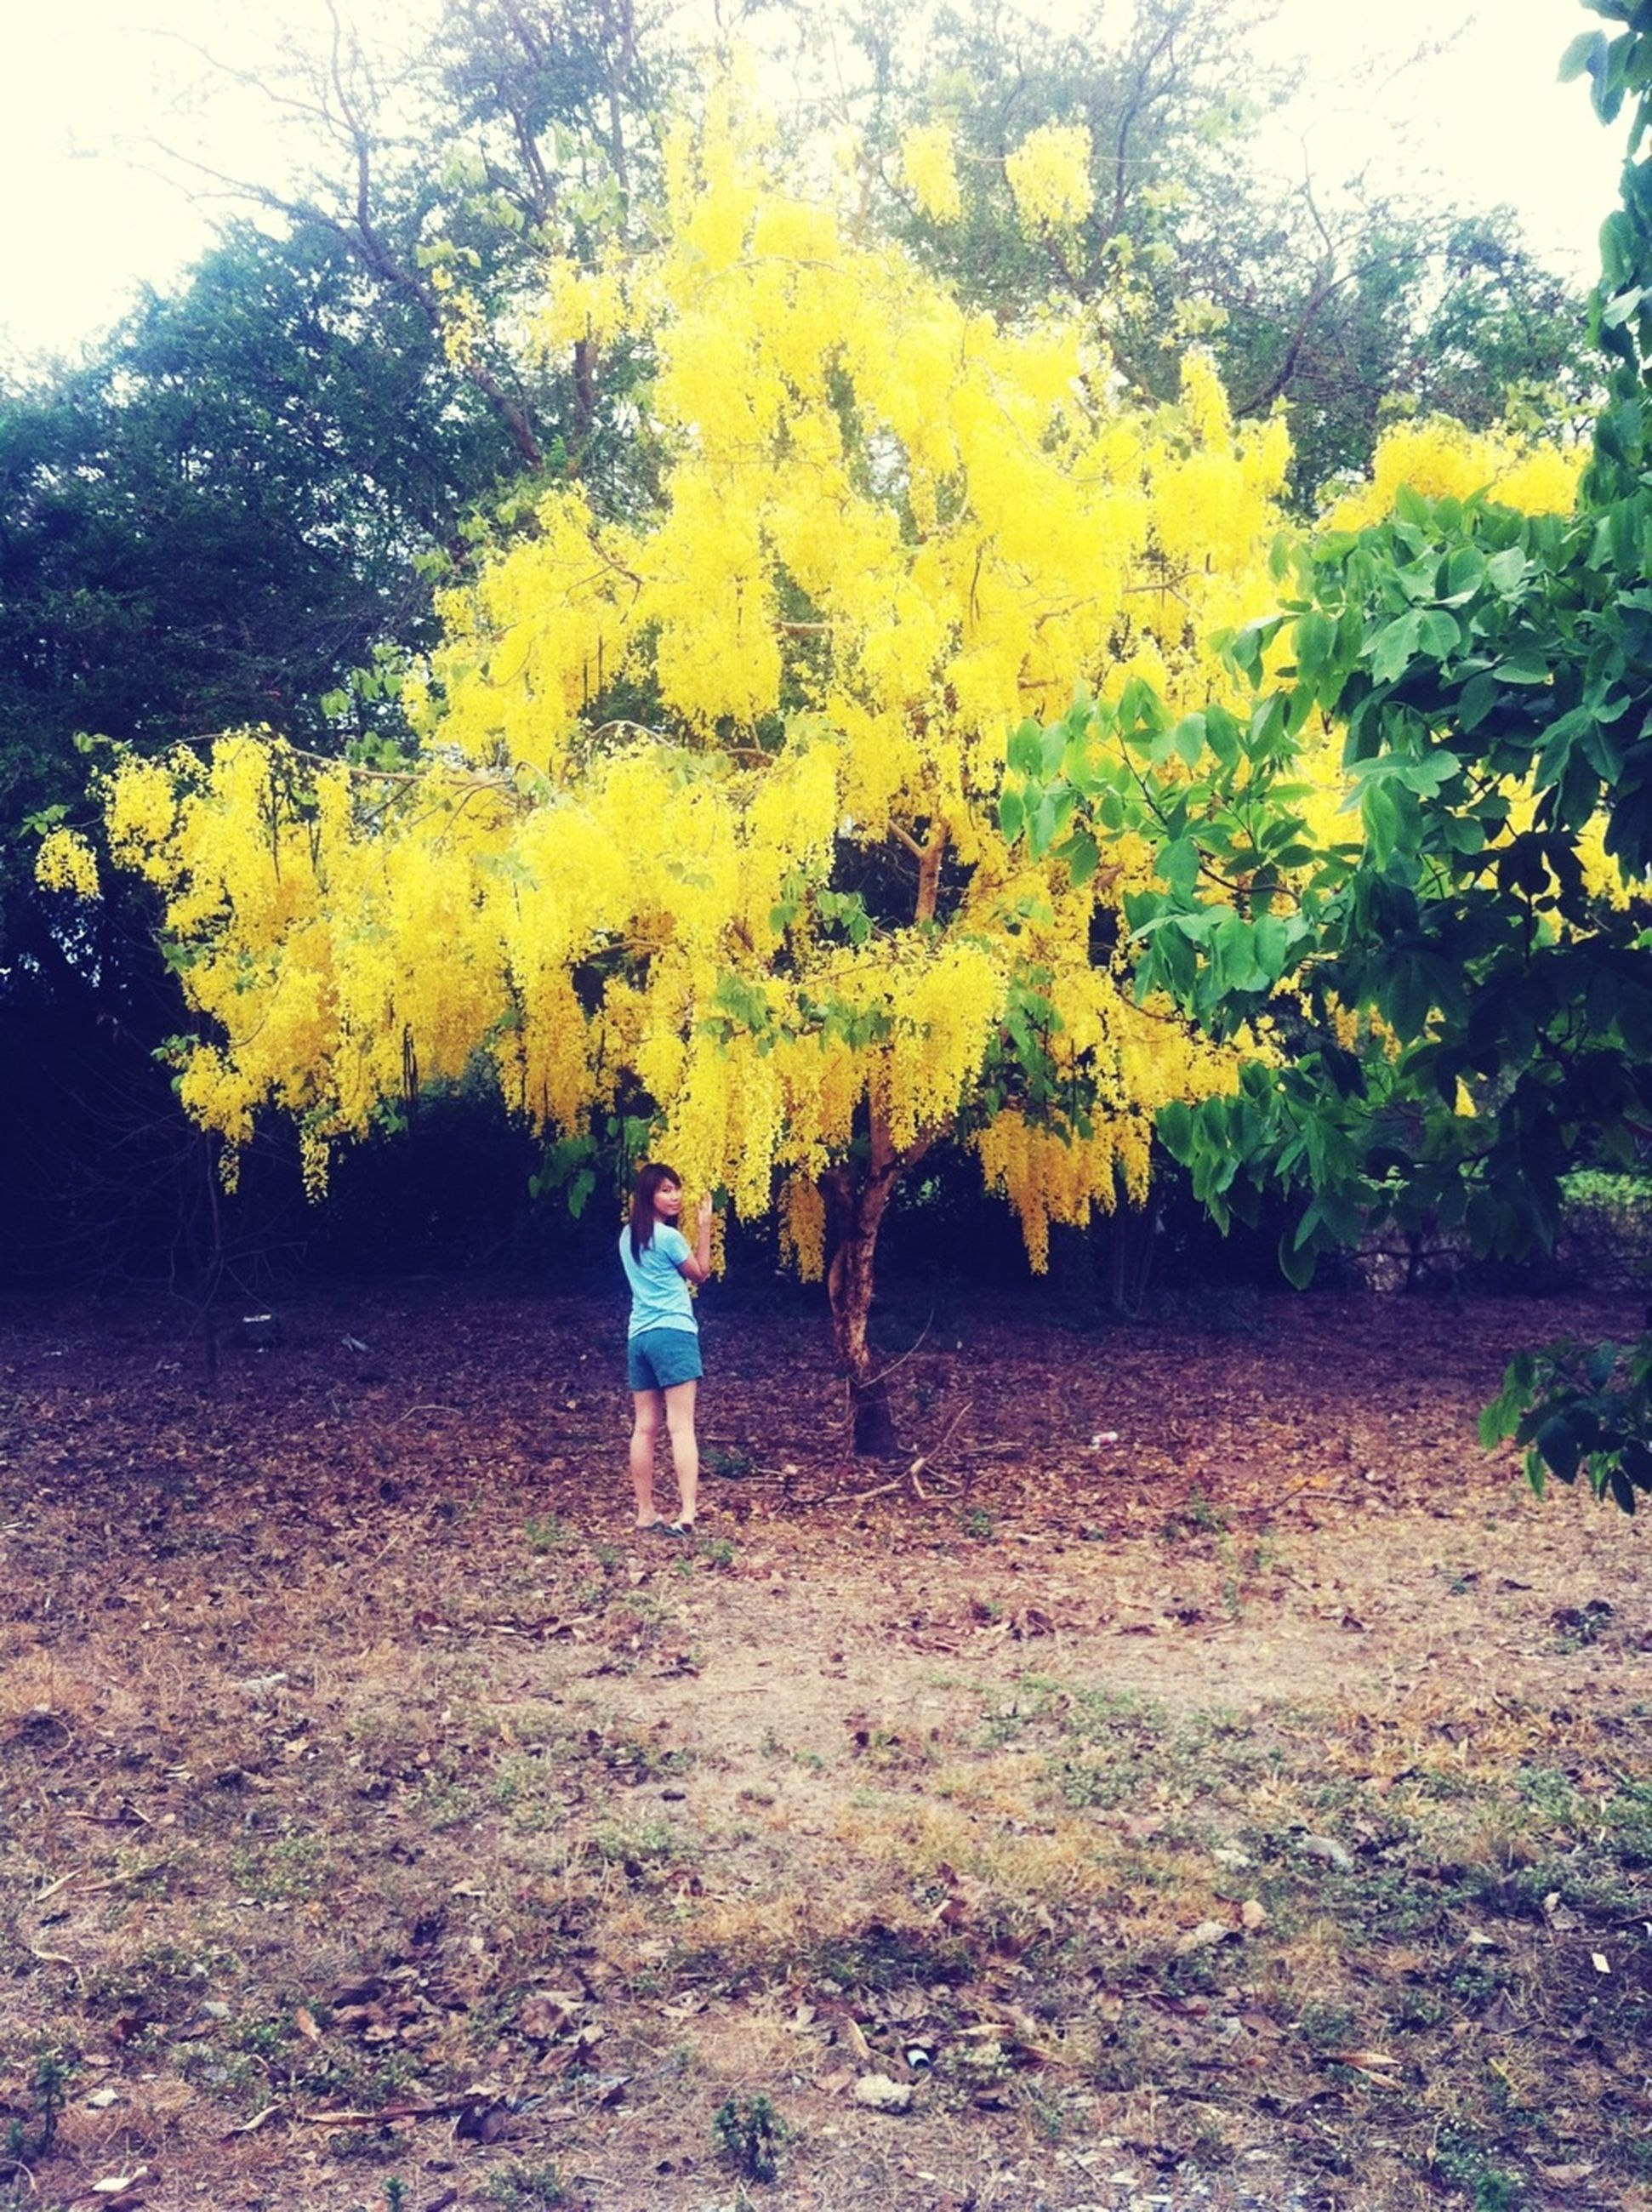 lifestyles, full length, yellow, rear view, leisure activity, tree, casual clothing, autumn, walking, childhood, season, girls, standing, growth, nature, flower, field, change